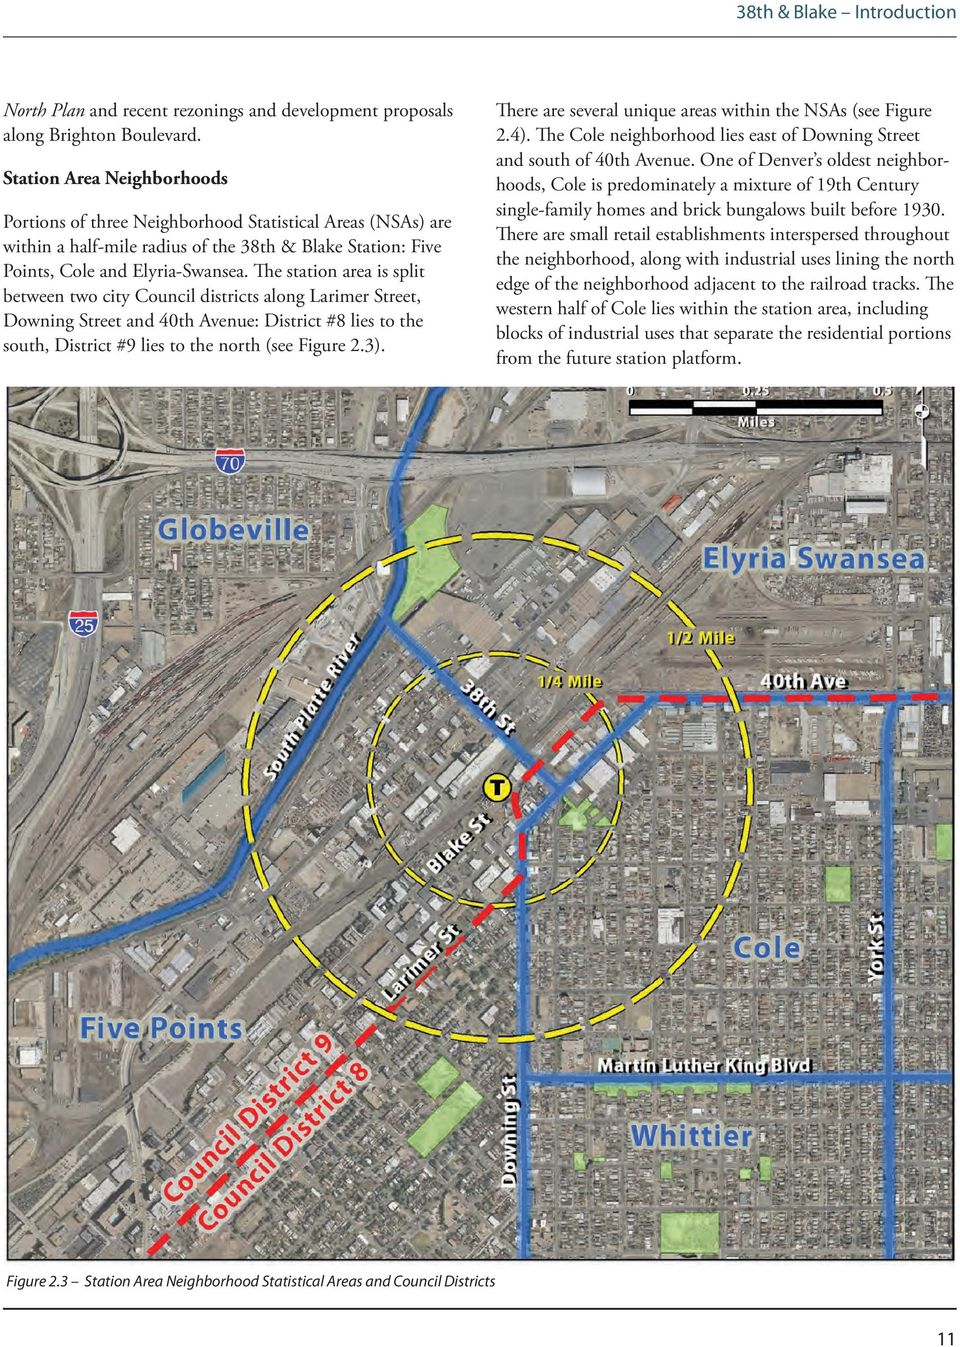 The station area is split between two city Council districts along Larimer Street, Downing Street and 40th Avenue: District #8 lies to the south, District #9 lies to the north (see Figure 2.3).